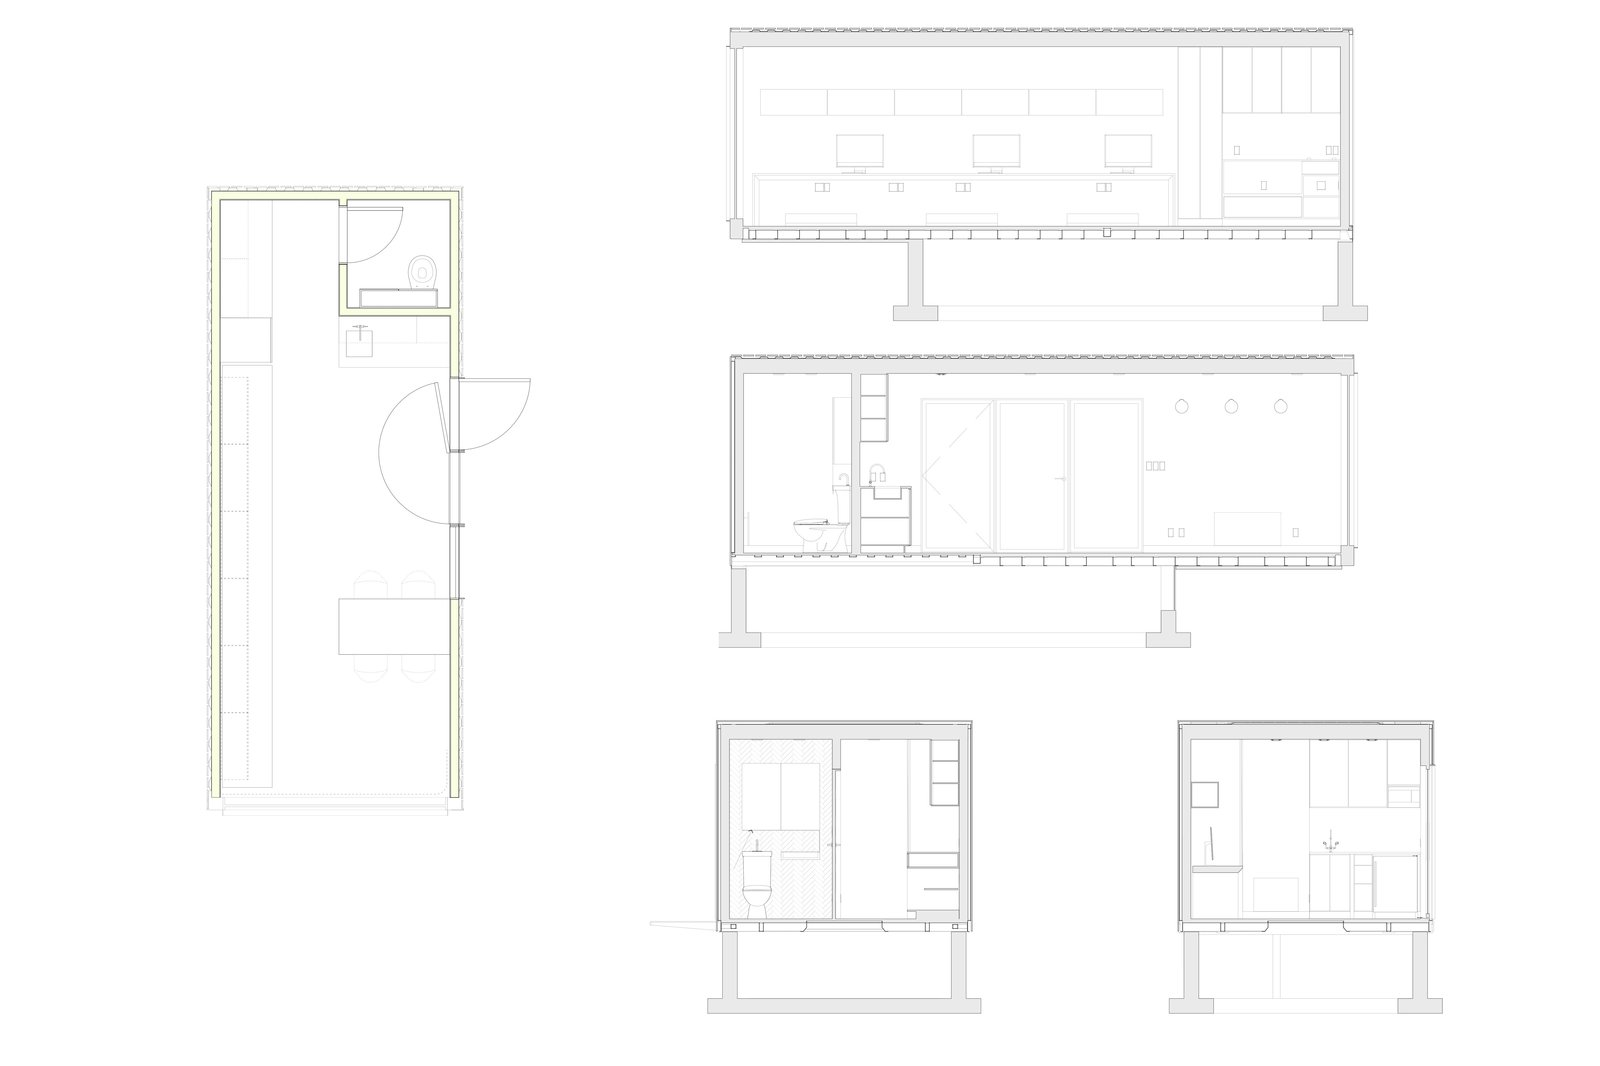 RBA Studio Floor Plan and Sections    Photo 11 of 11 in A Shipping Container Turns Into a Backyard Architecture Studio